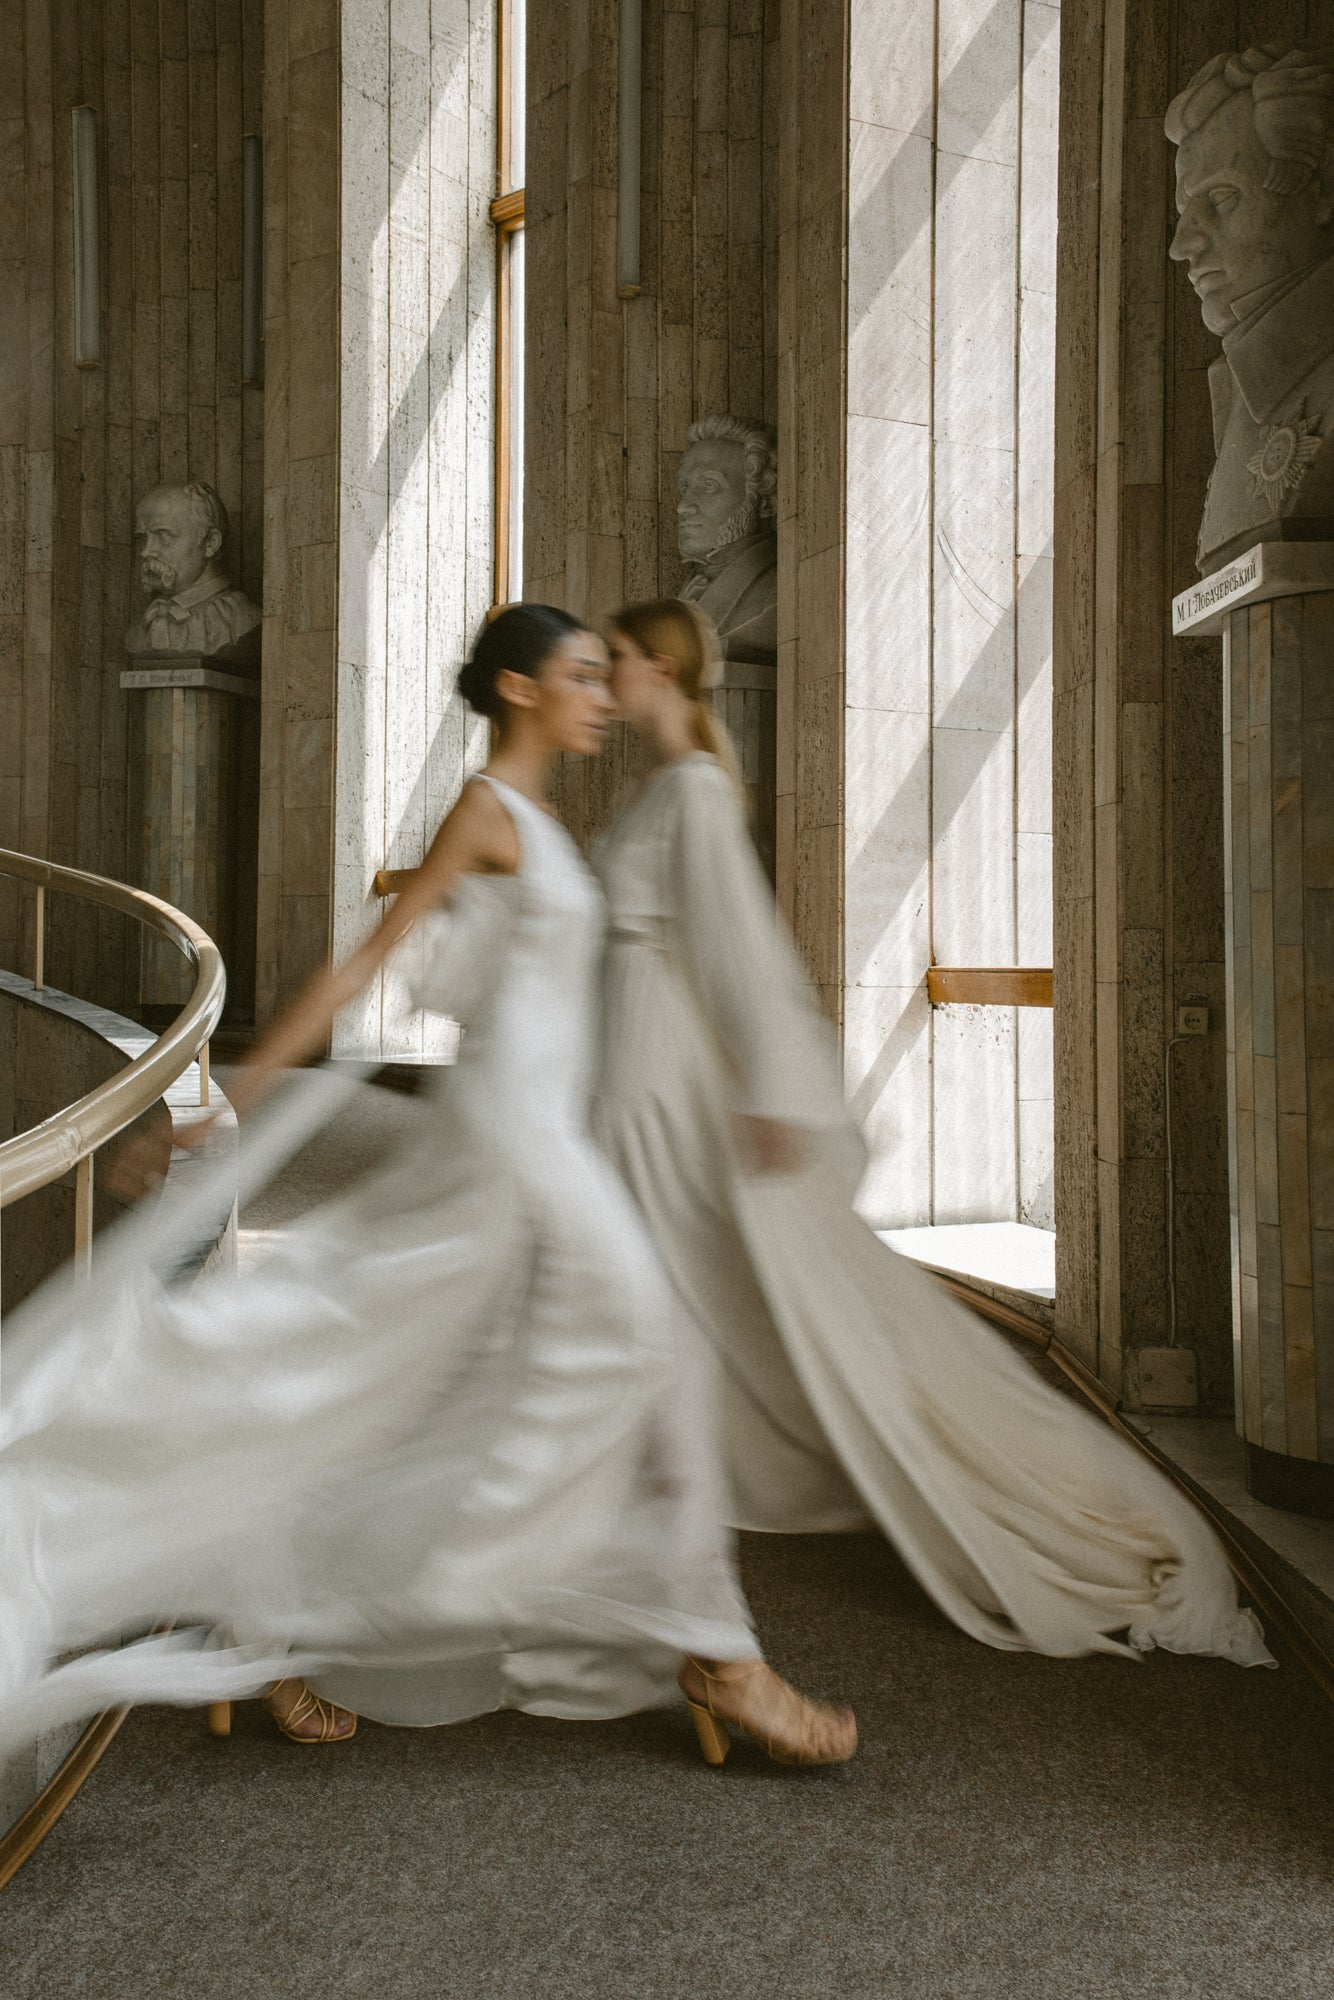 Mywony Midsummer Night's Dream Collection of wedding dresses